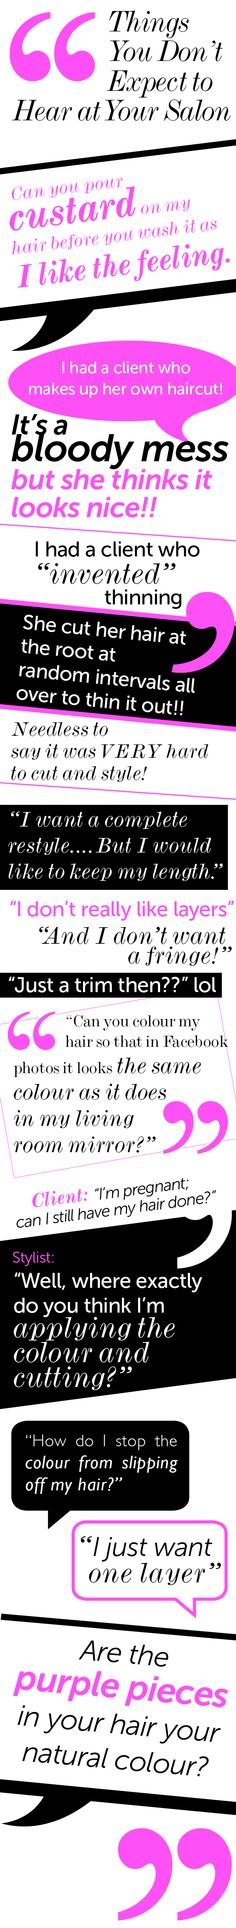 Things You Don't Expect to Hear at Your Salon... - Salons Direct